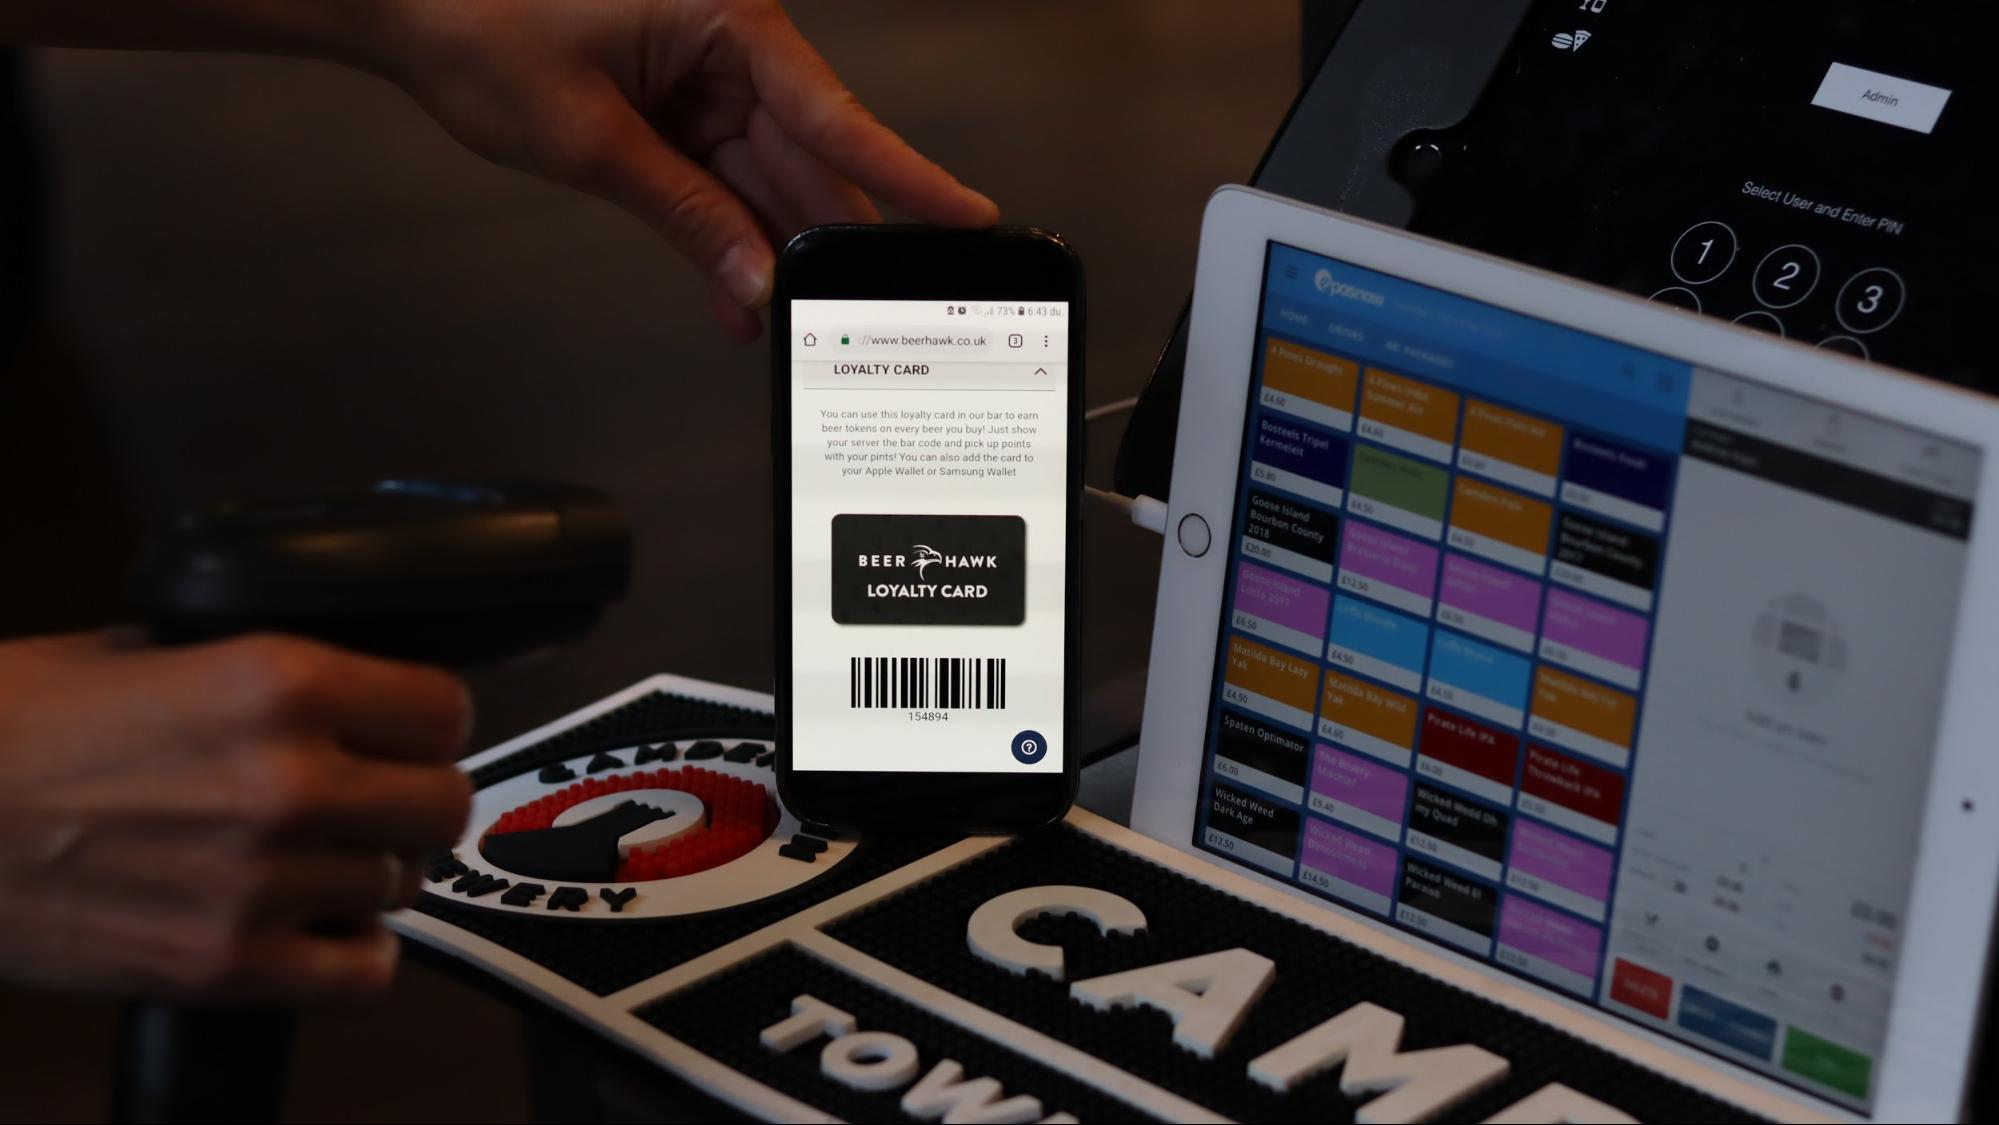 UK-based specialty beer retailer Beer Hawk uses a digital loyalty card system. After scanning a member's card, bartenders can give personalized beer recommendations to patrons by seeing their purchase history.